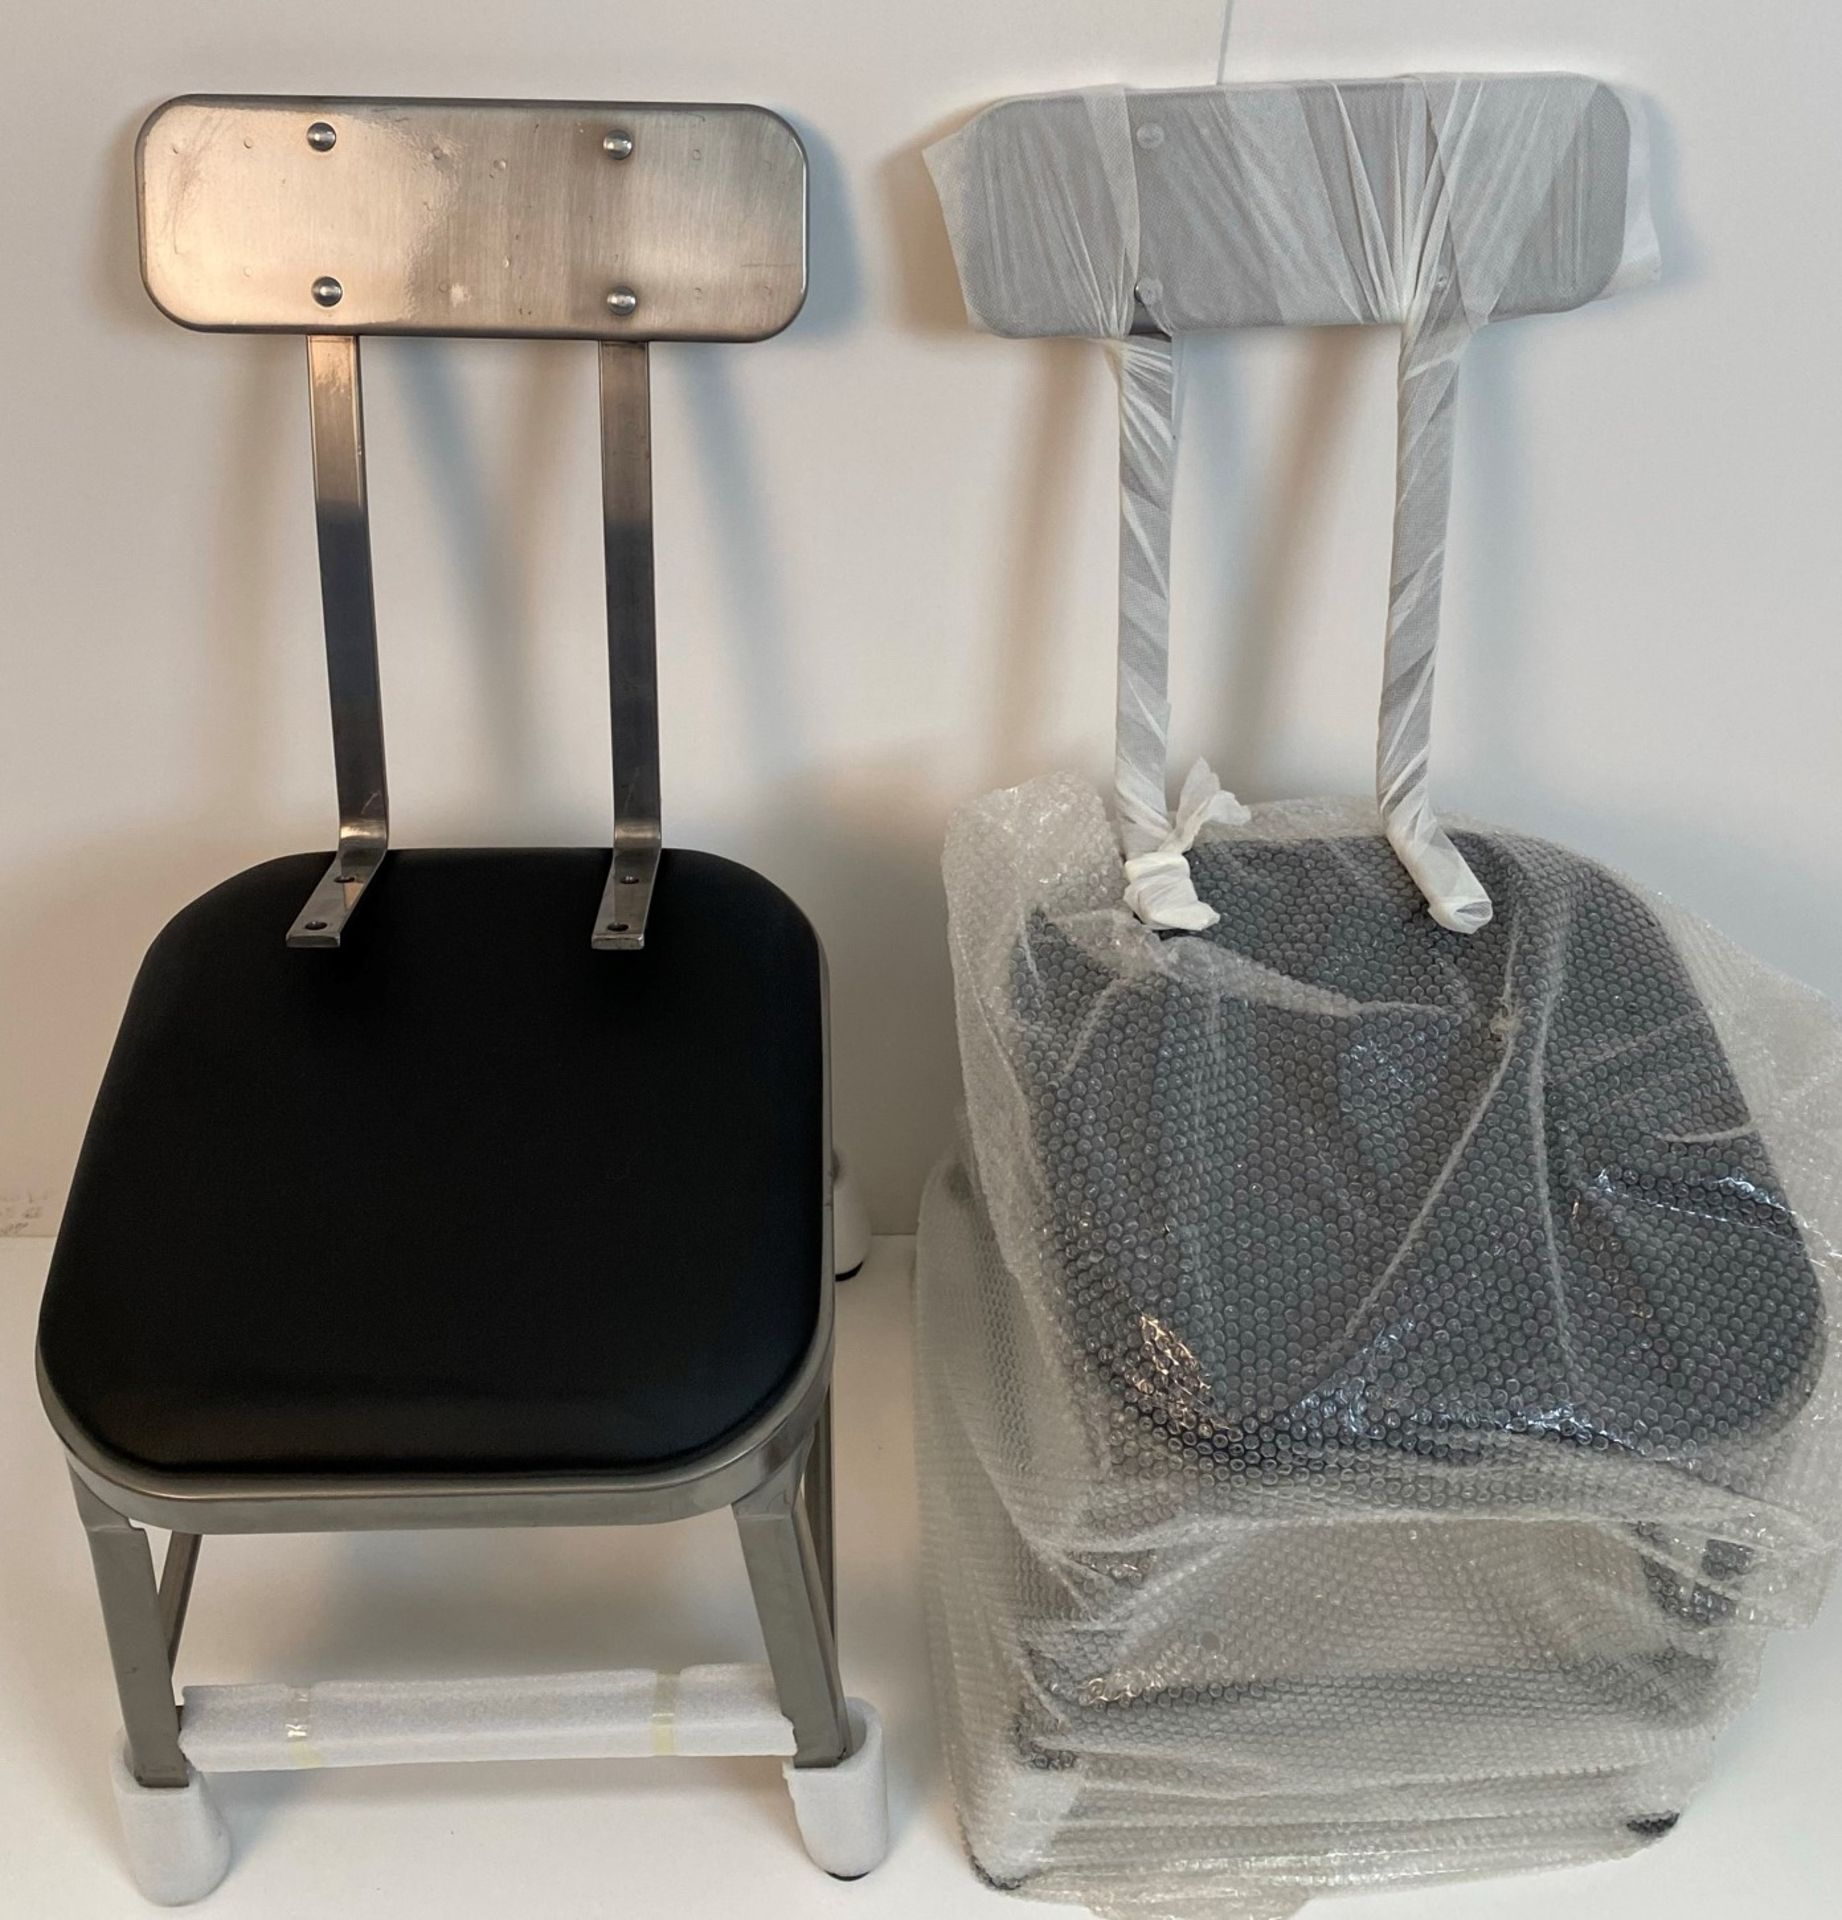 2 x Calypso Brushed Transparent Finish Metal Framed Bar Stools/Dining Chairs with Black Pad and - Image 2 of 2